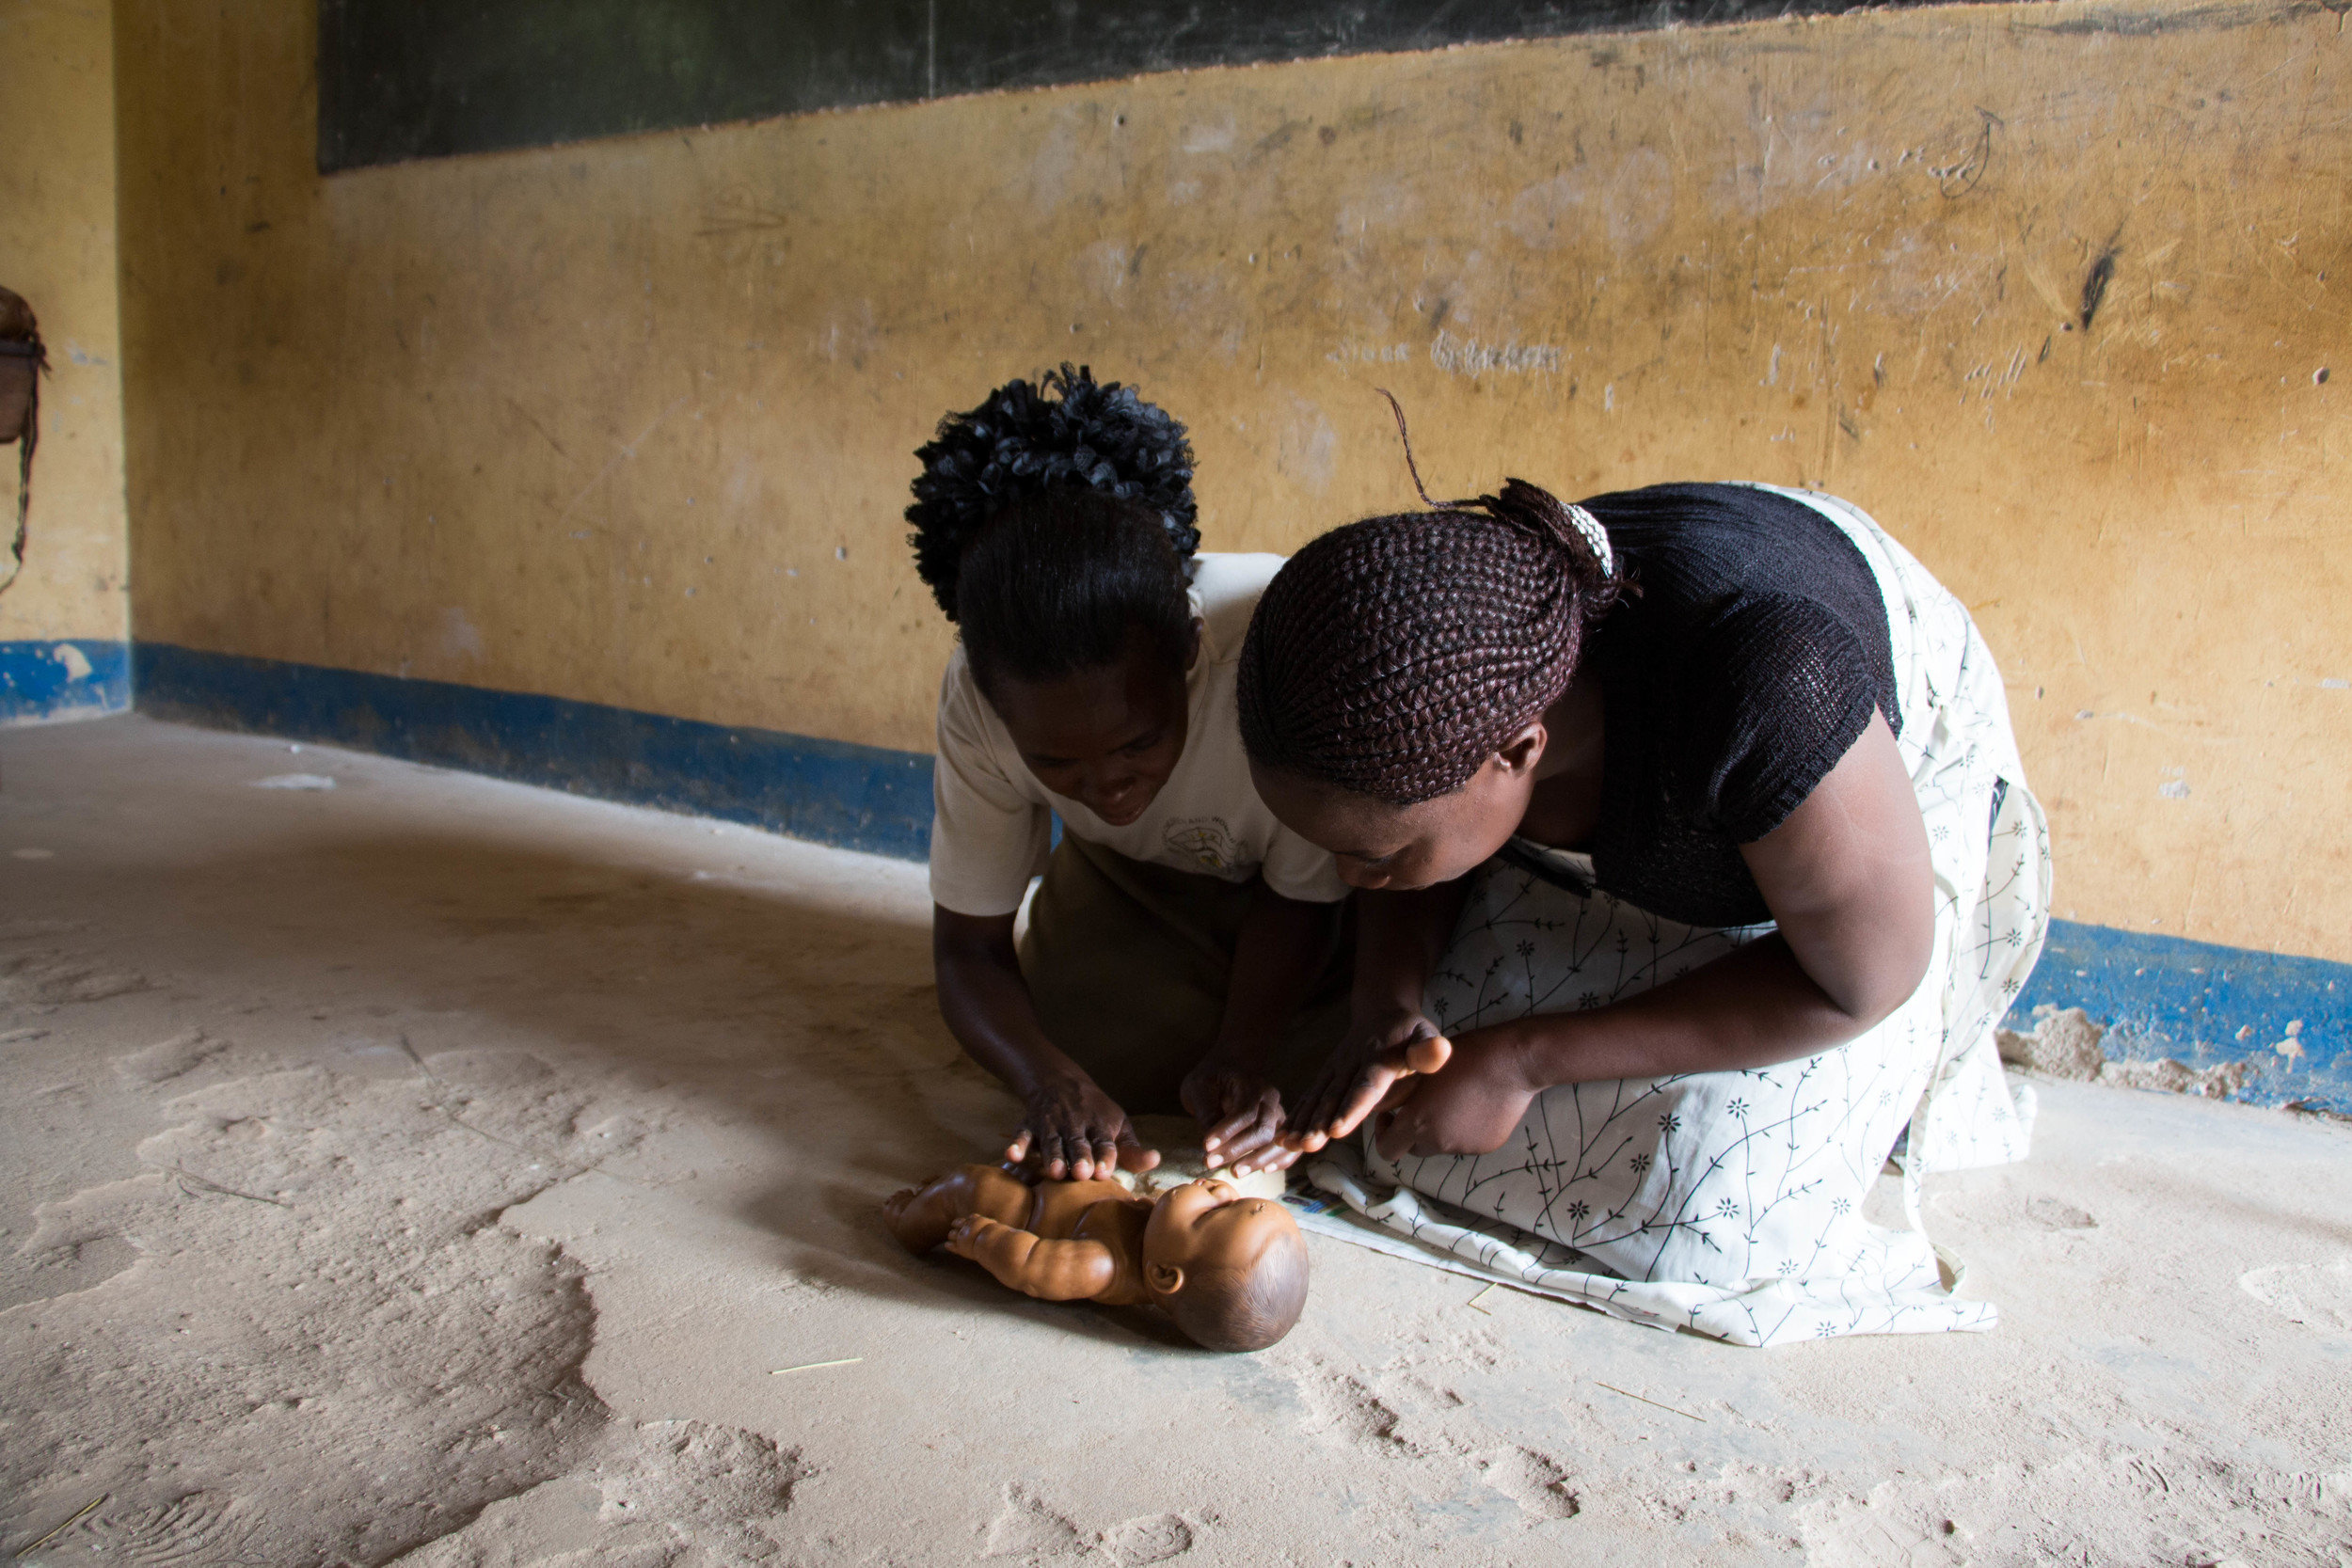 Teachers in Miller's class practice their new skills on infant models. In Uganda where emergency care is scarce, serious accidents typically end in death. Knowing what to do in emergency situations can significantly change people's outcomes.